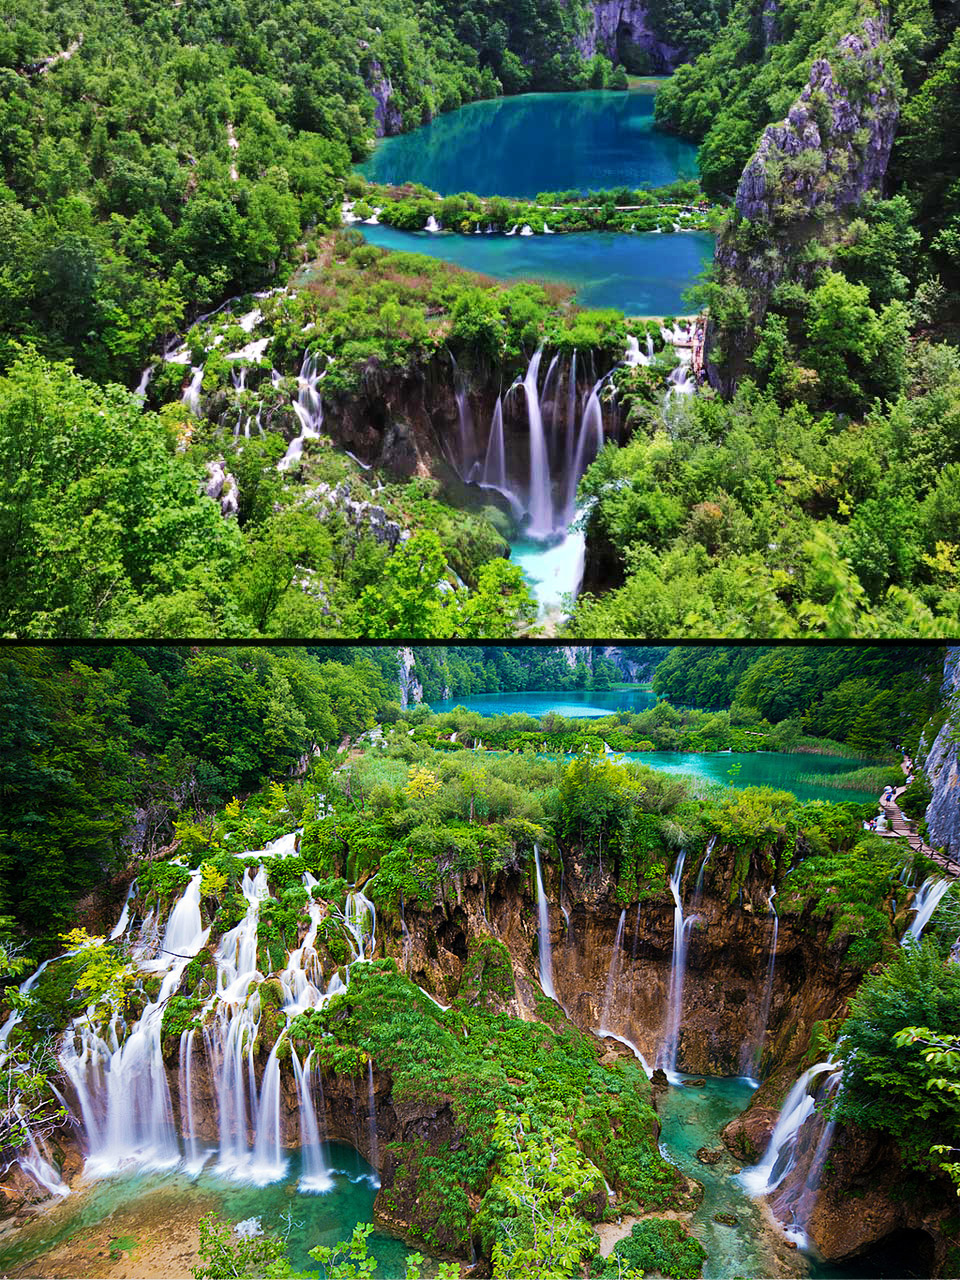 Plitvice-Falls-in-Croatia---most-amazing-waterfalls-1